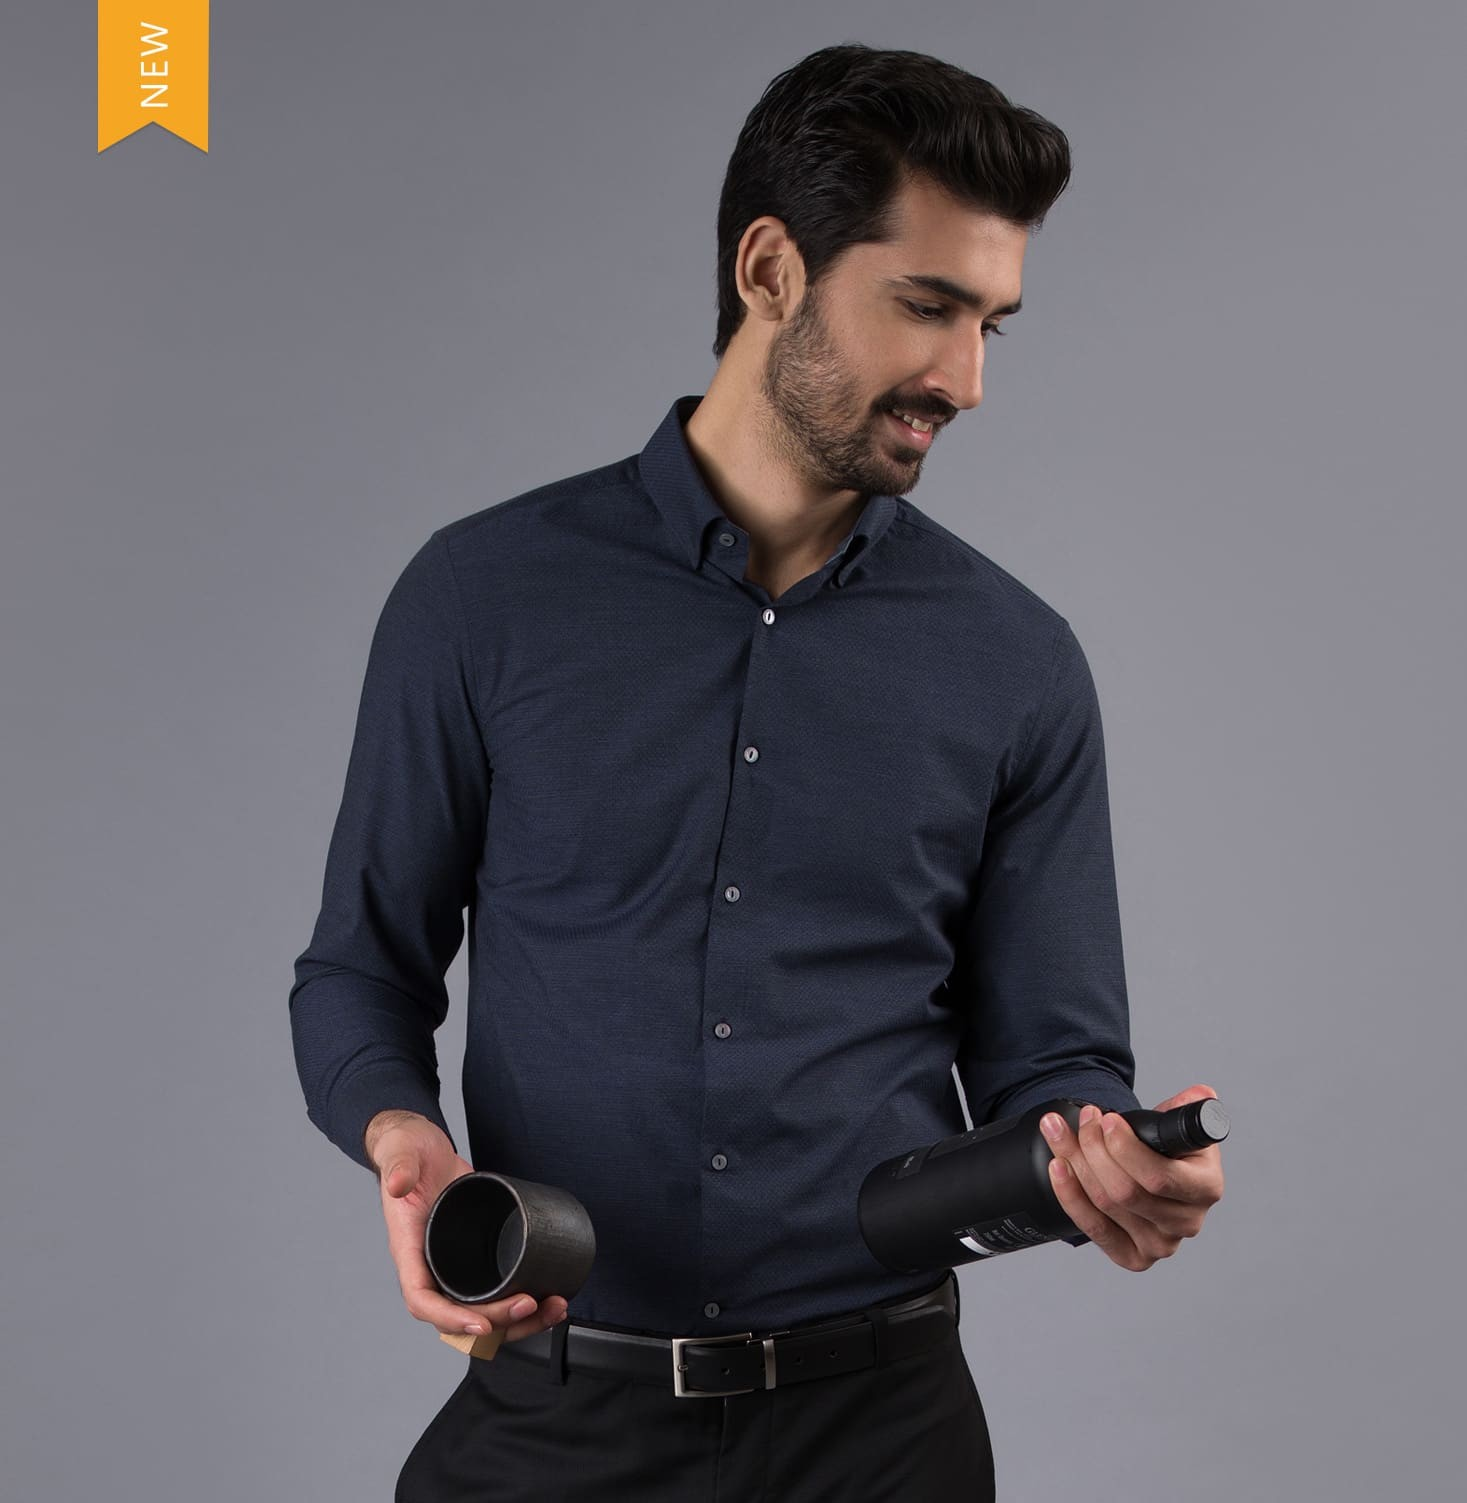 Navy Dot Branded Designer Shirts for Men